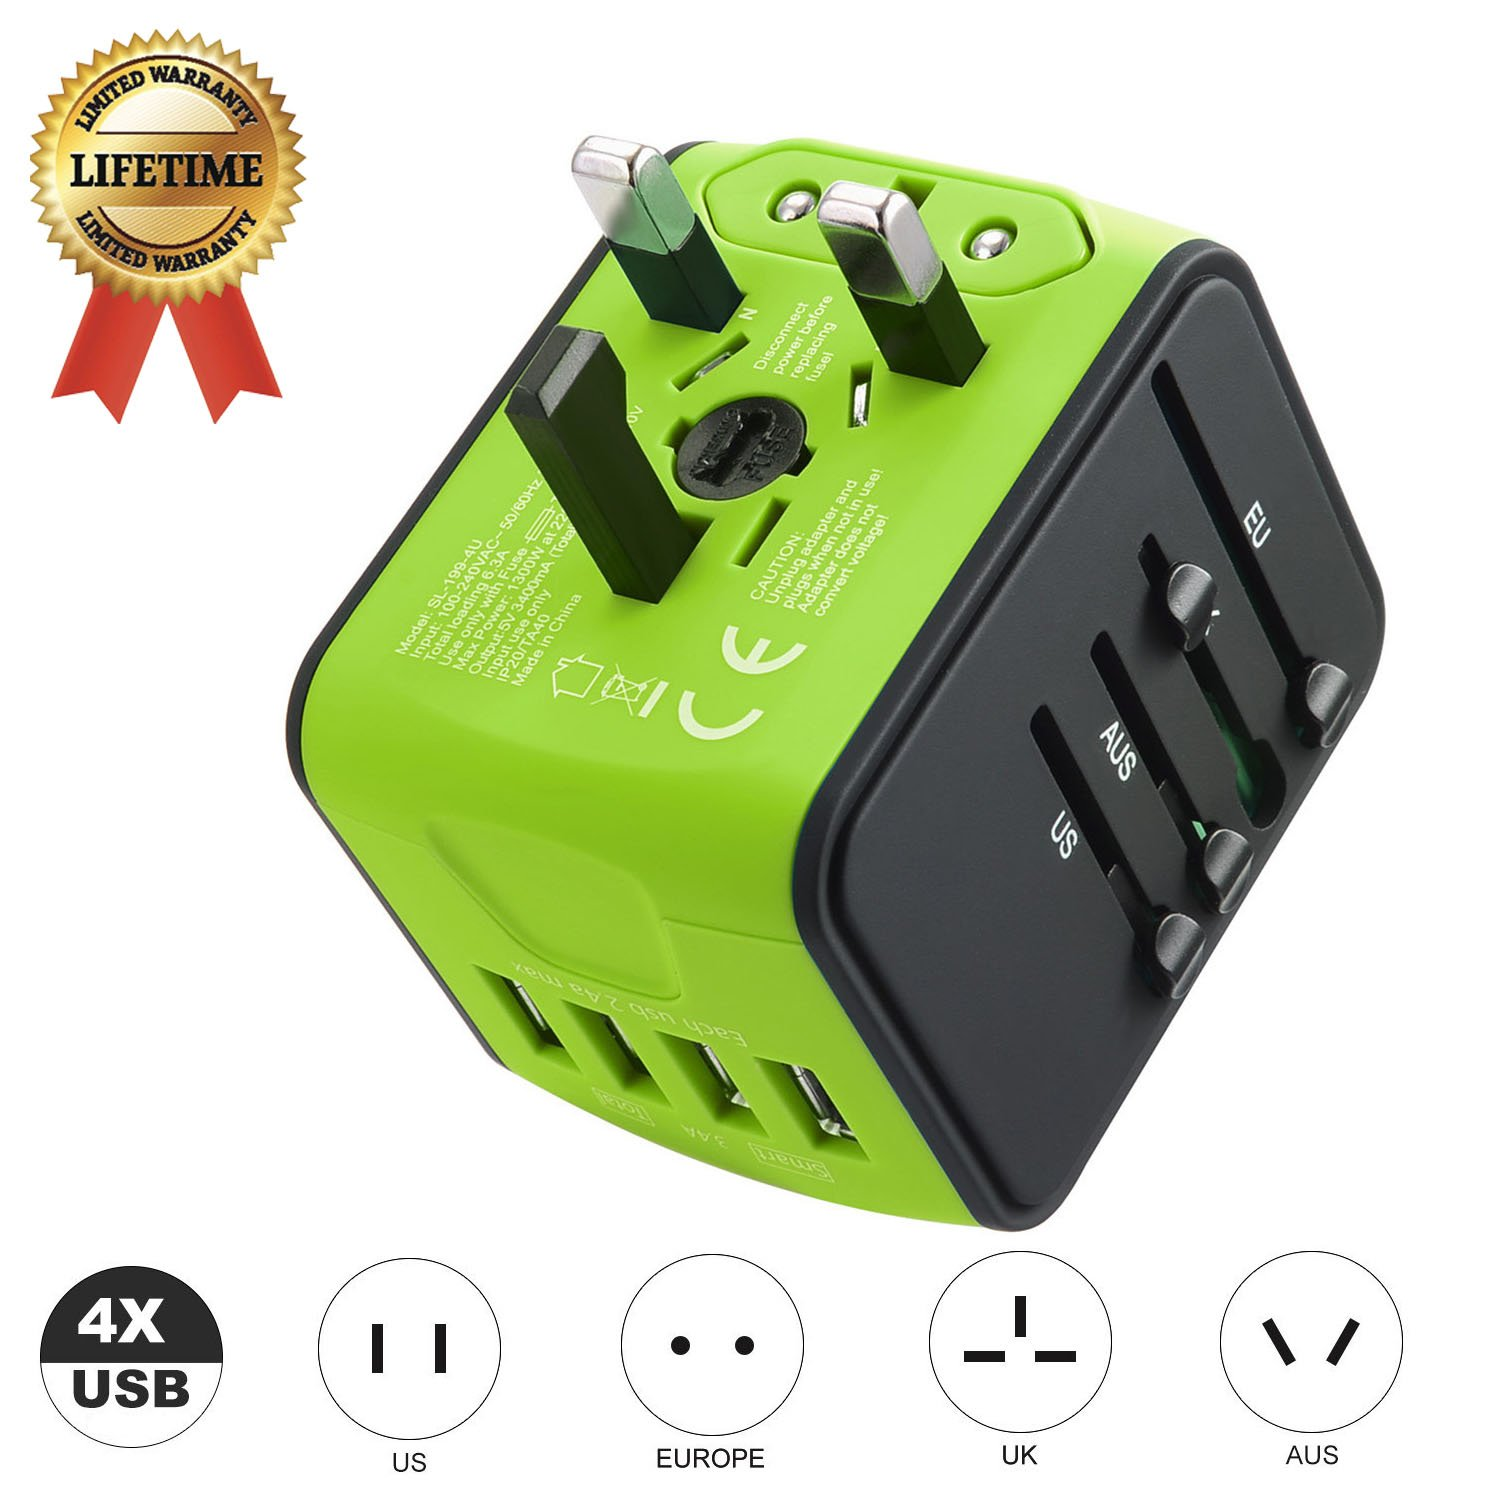 Travel Adapter JMFONE International Tavel Power Adapter 4 USB Wall Charger Worldwide Travel Charger Universal AC Wall Outlet Plugs US, EU, UK, AU 160 Countries (Green) by JMFONE